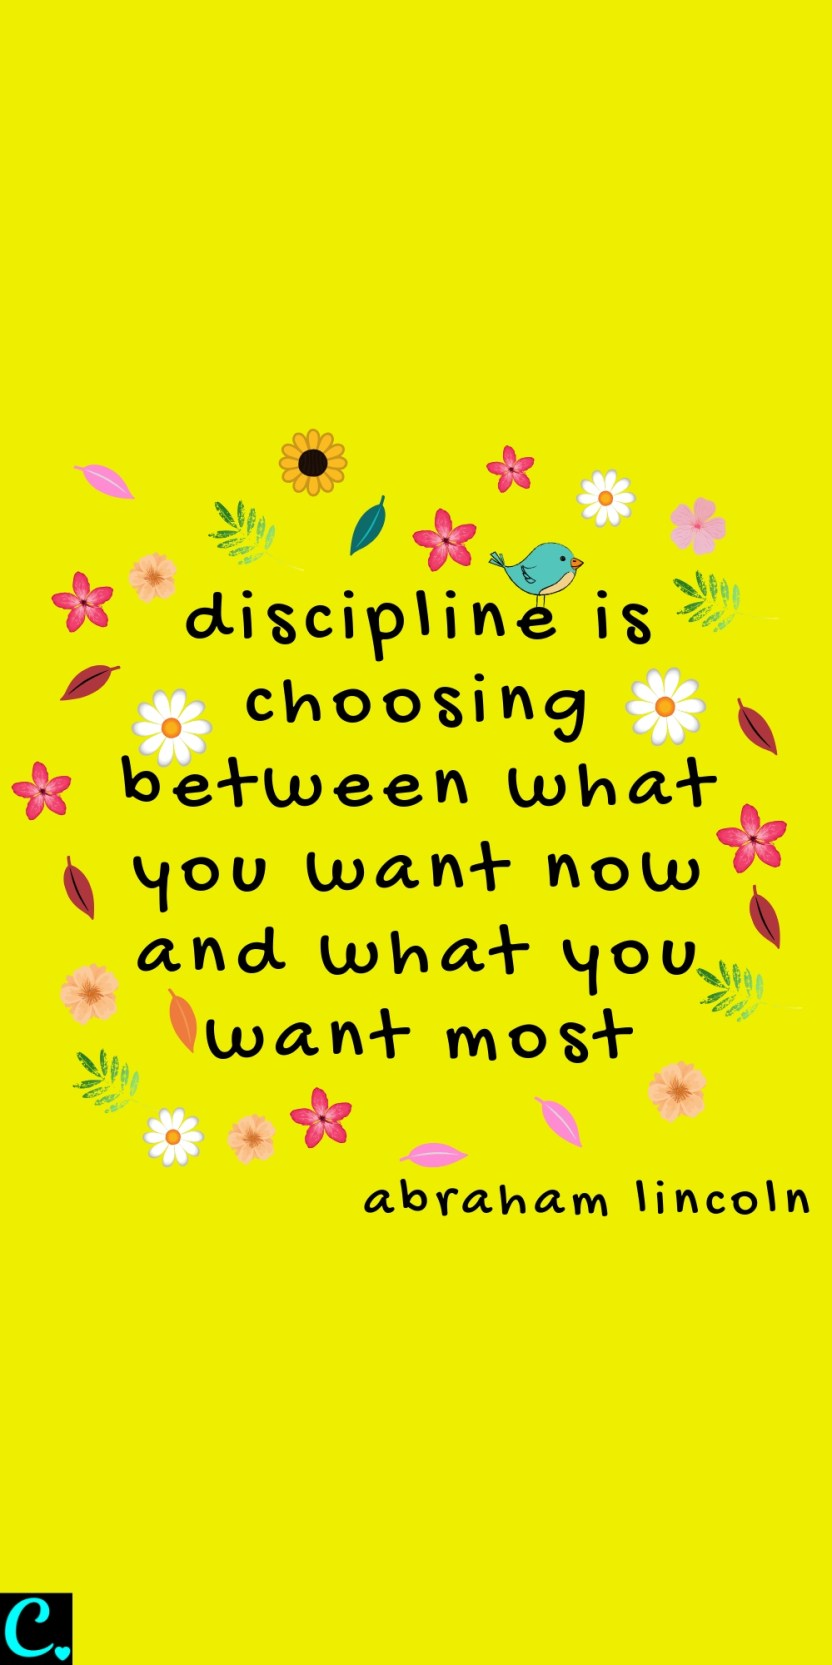 discipline is choosing between what you want now and what you want most - Abraham Lincoln Quote about discipline #productivityquotes #productivity #successquotes #success